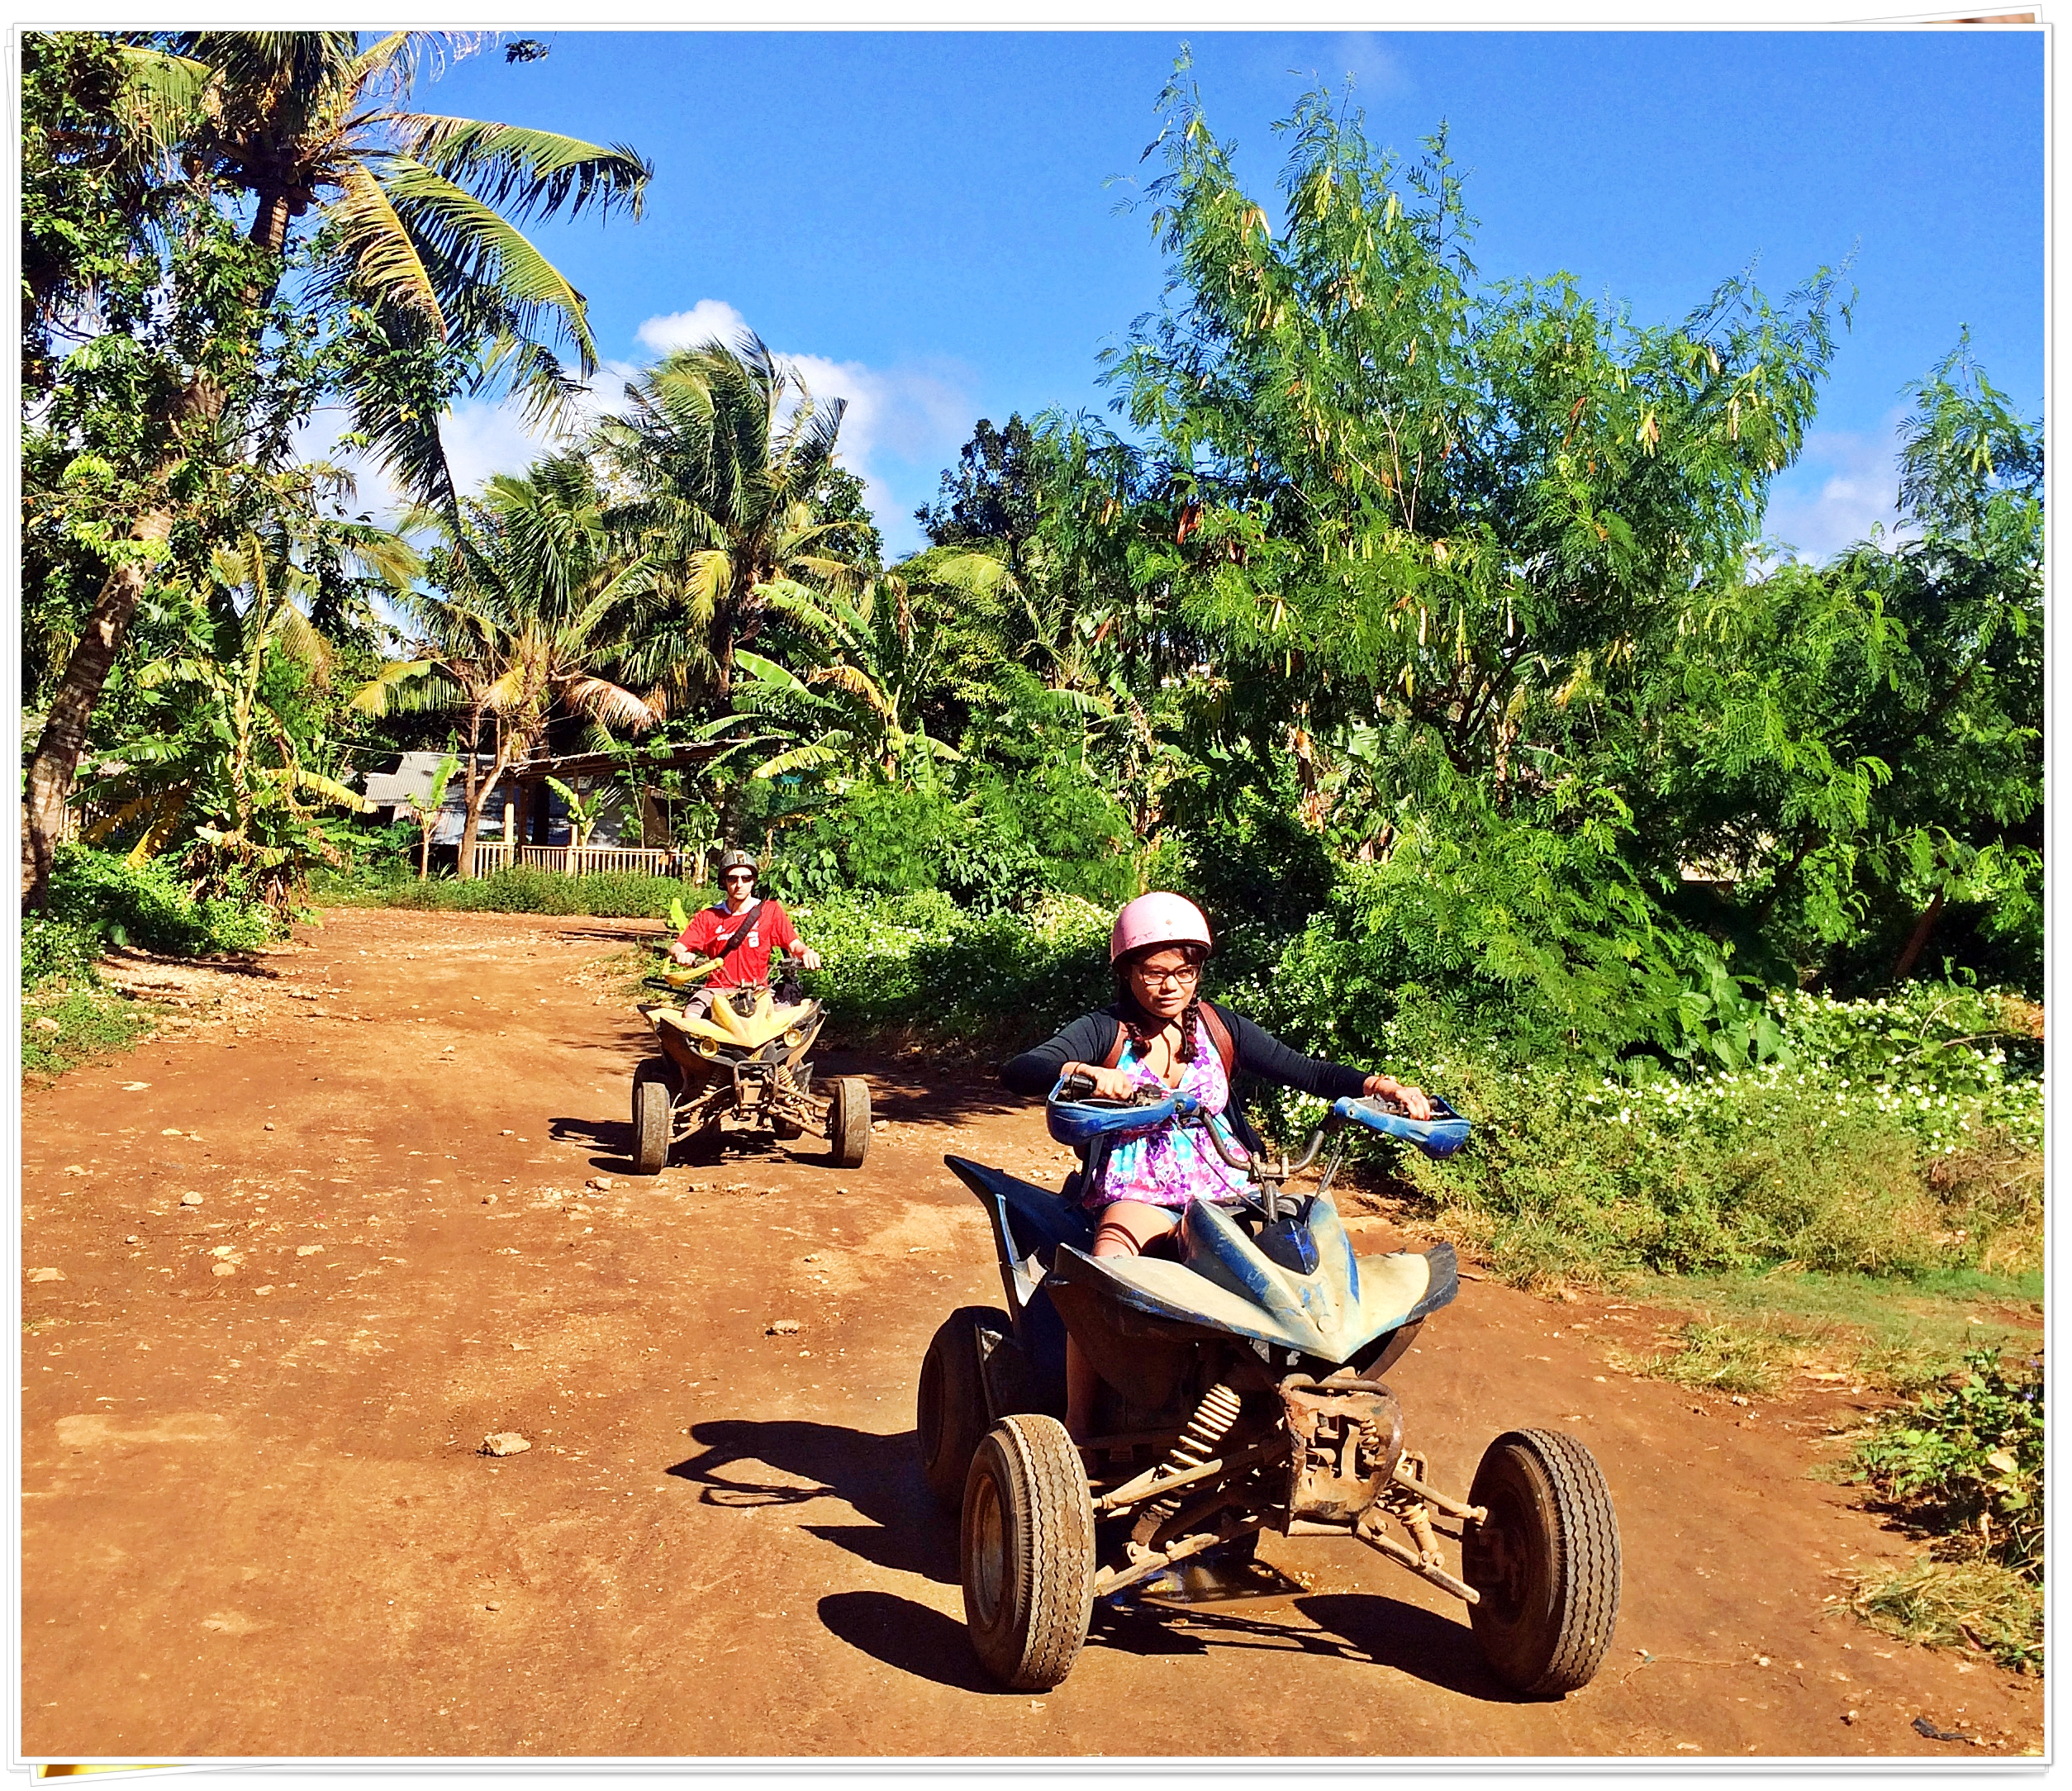 2015 Boracay Aklan Philippines (ATV Riding to Mt. Luho Viewpoint)